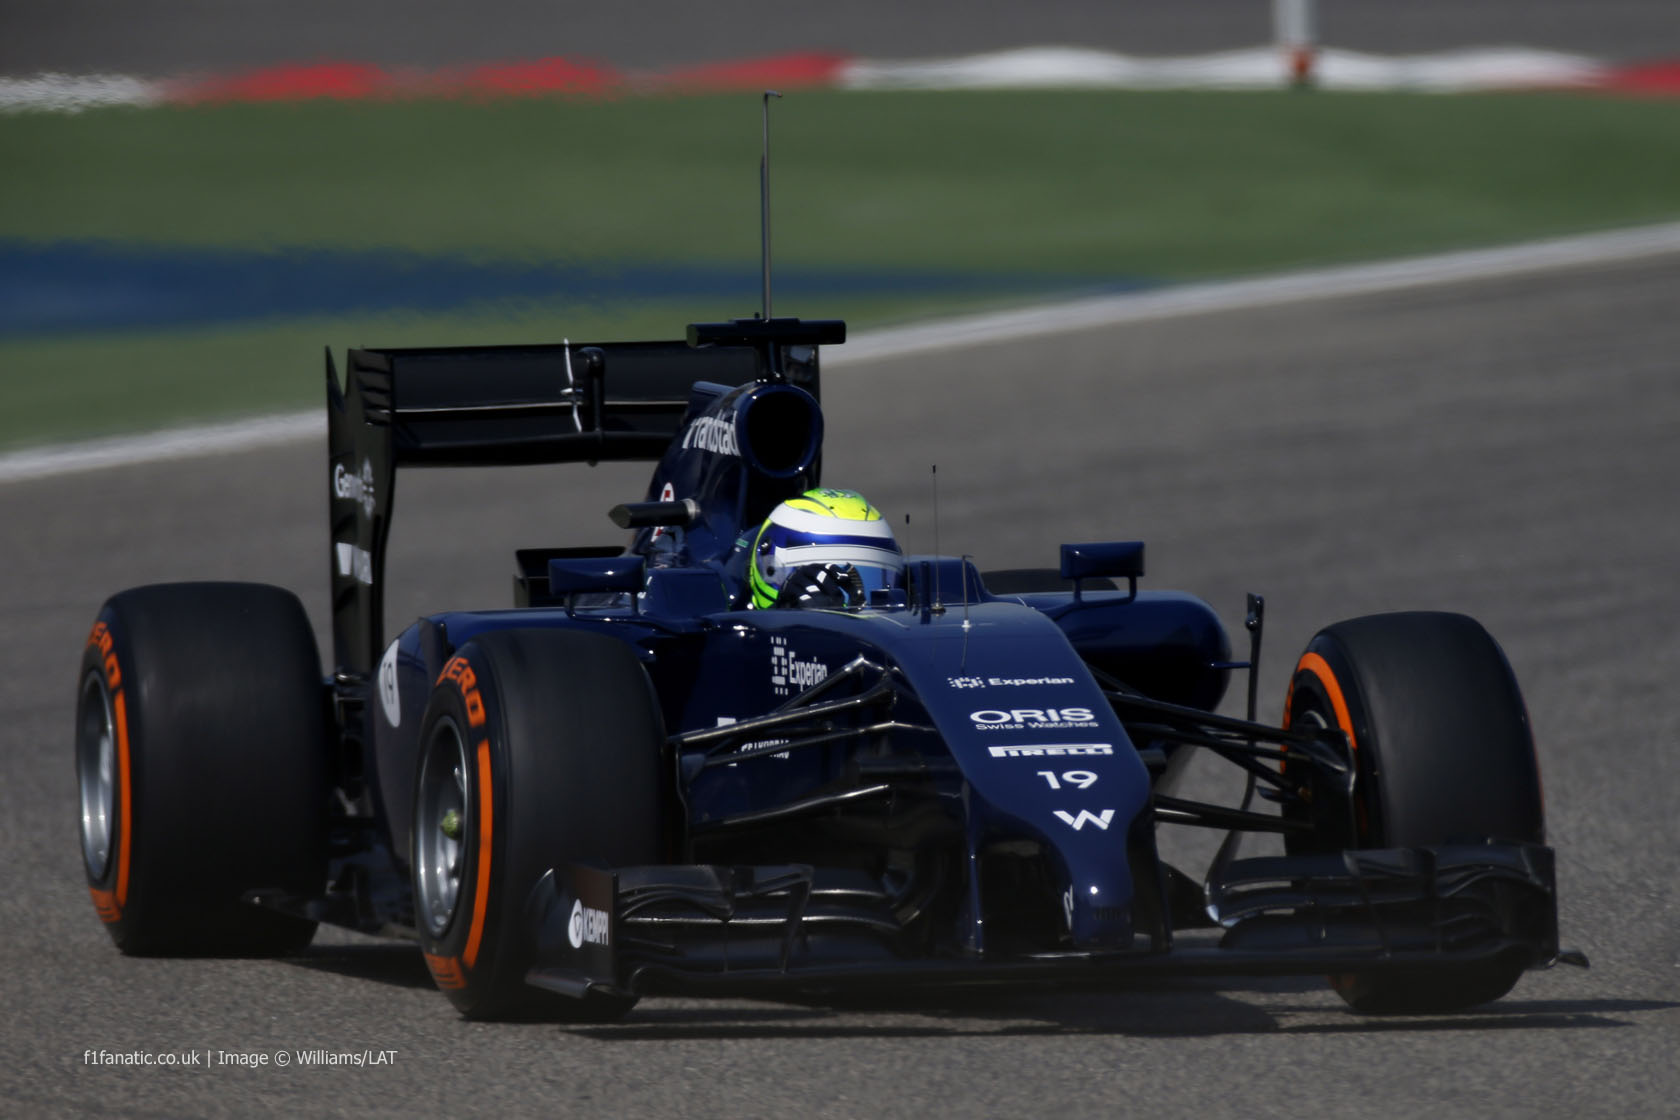 Felipe Massa, Williams, Bahrain, 2014